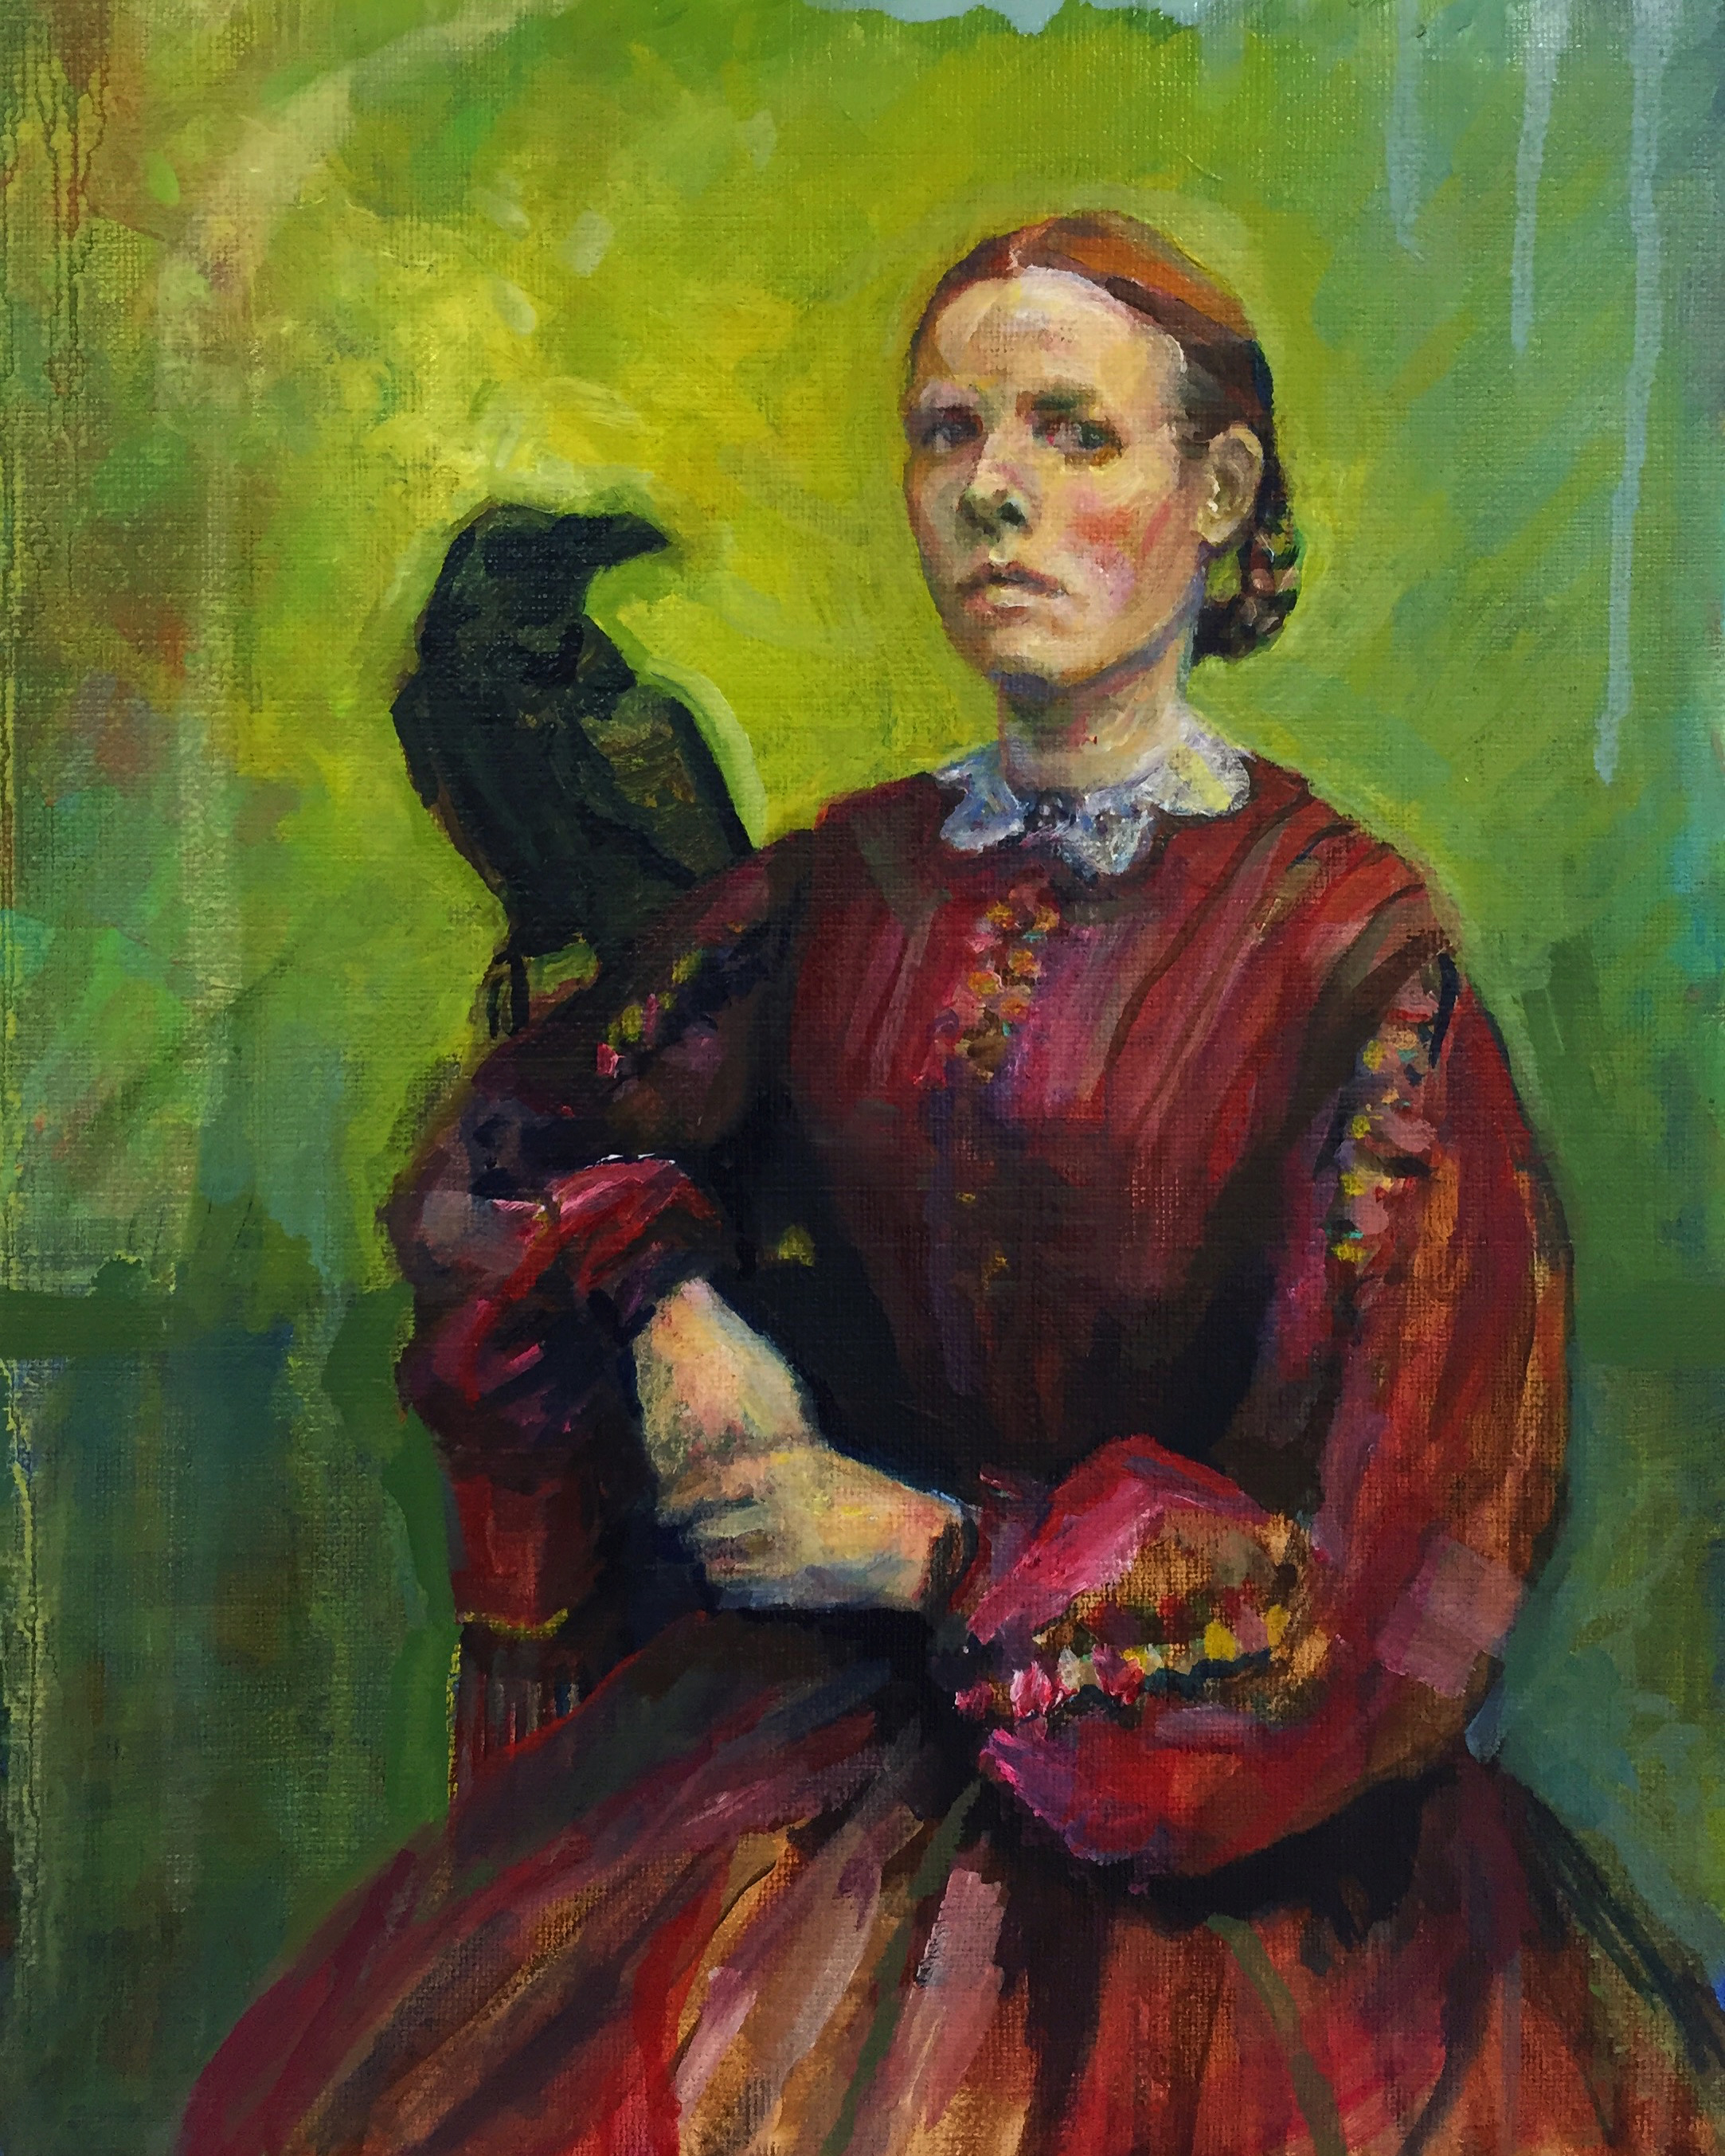 raven-and-woman-angelica-marken-2016